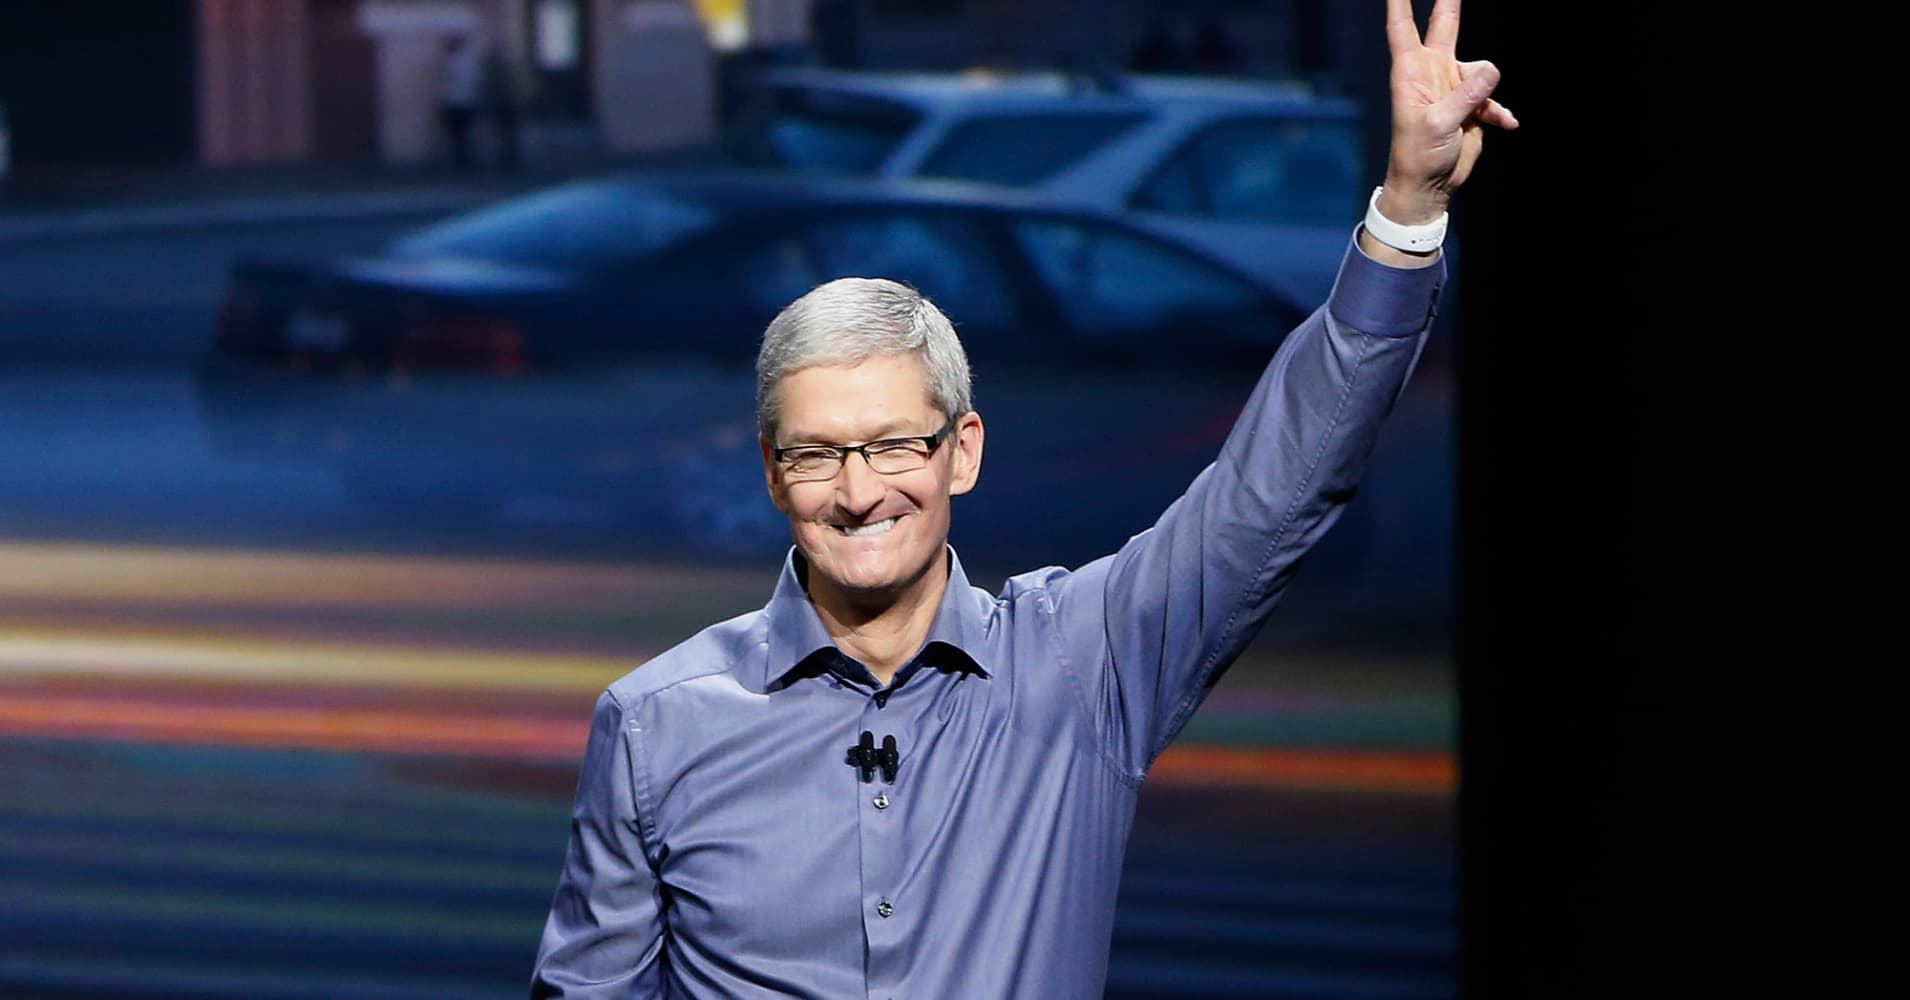 Tim Cook was the second highest-paid executive of 2016, pulling in $150,036,907